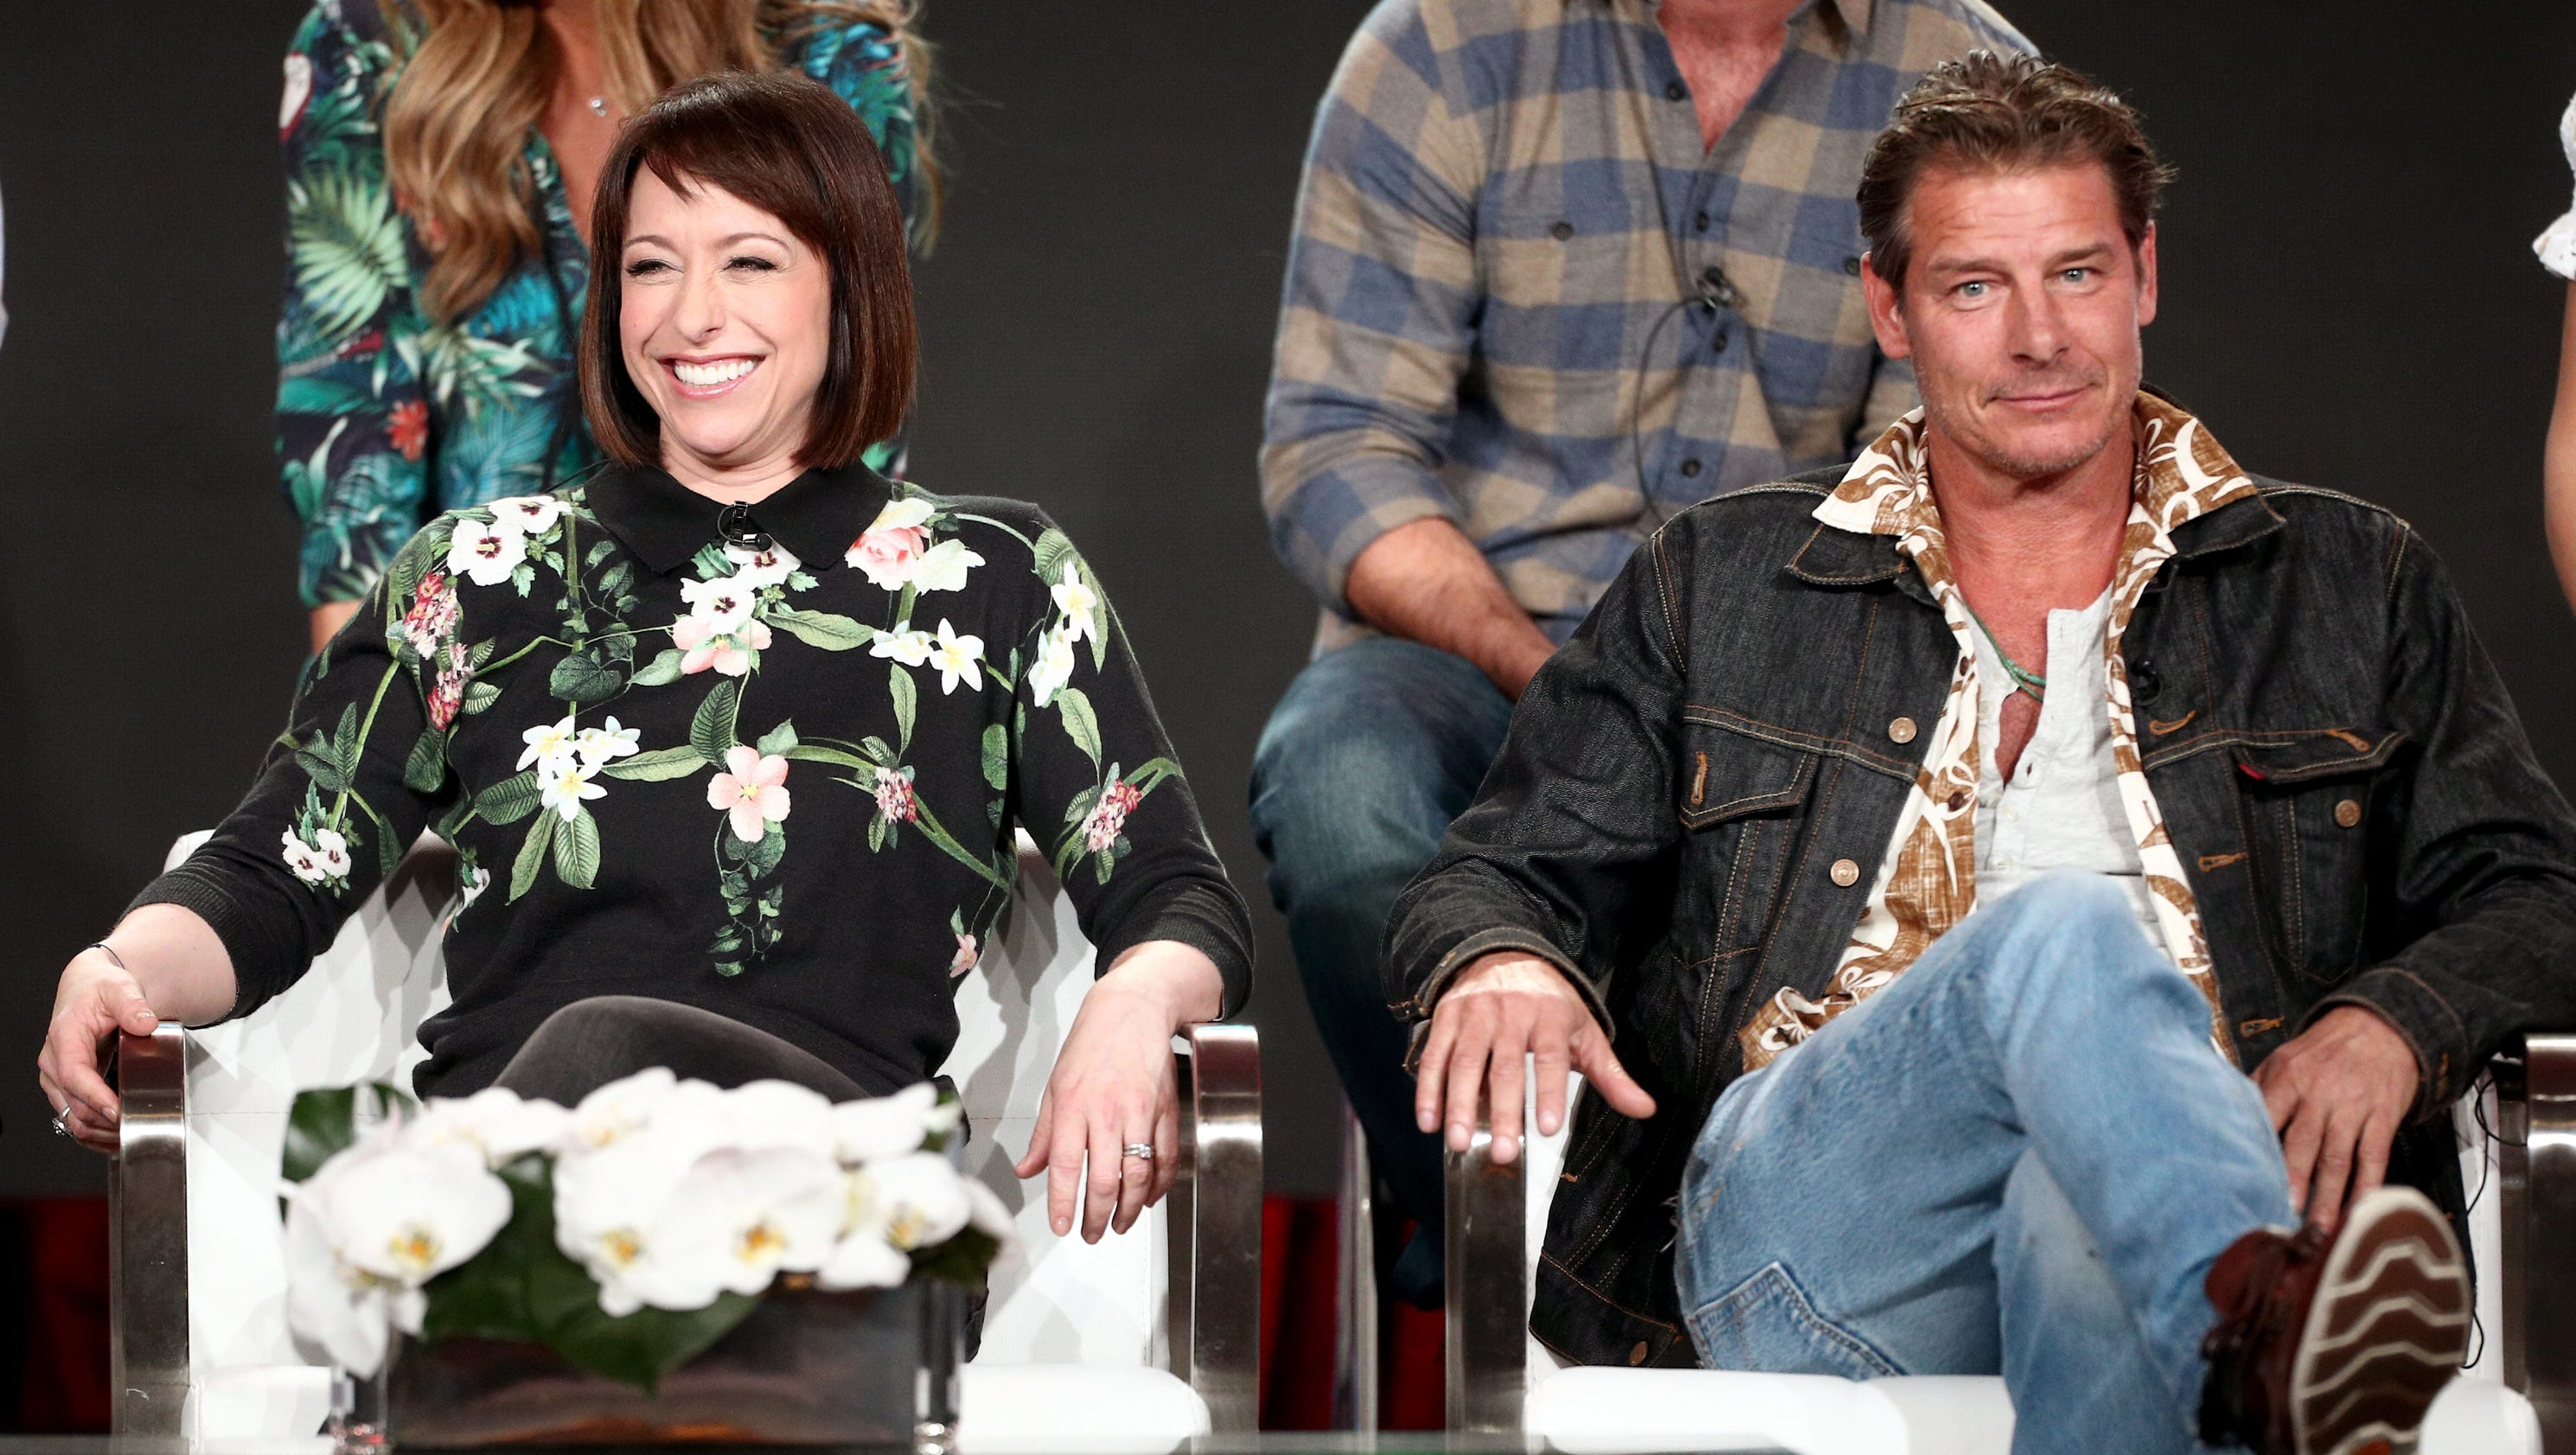 Trading Spaces returns to TLC with original cast